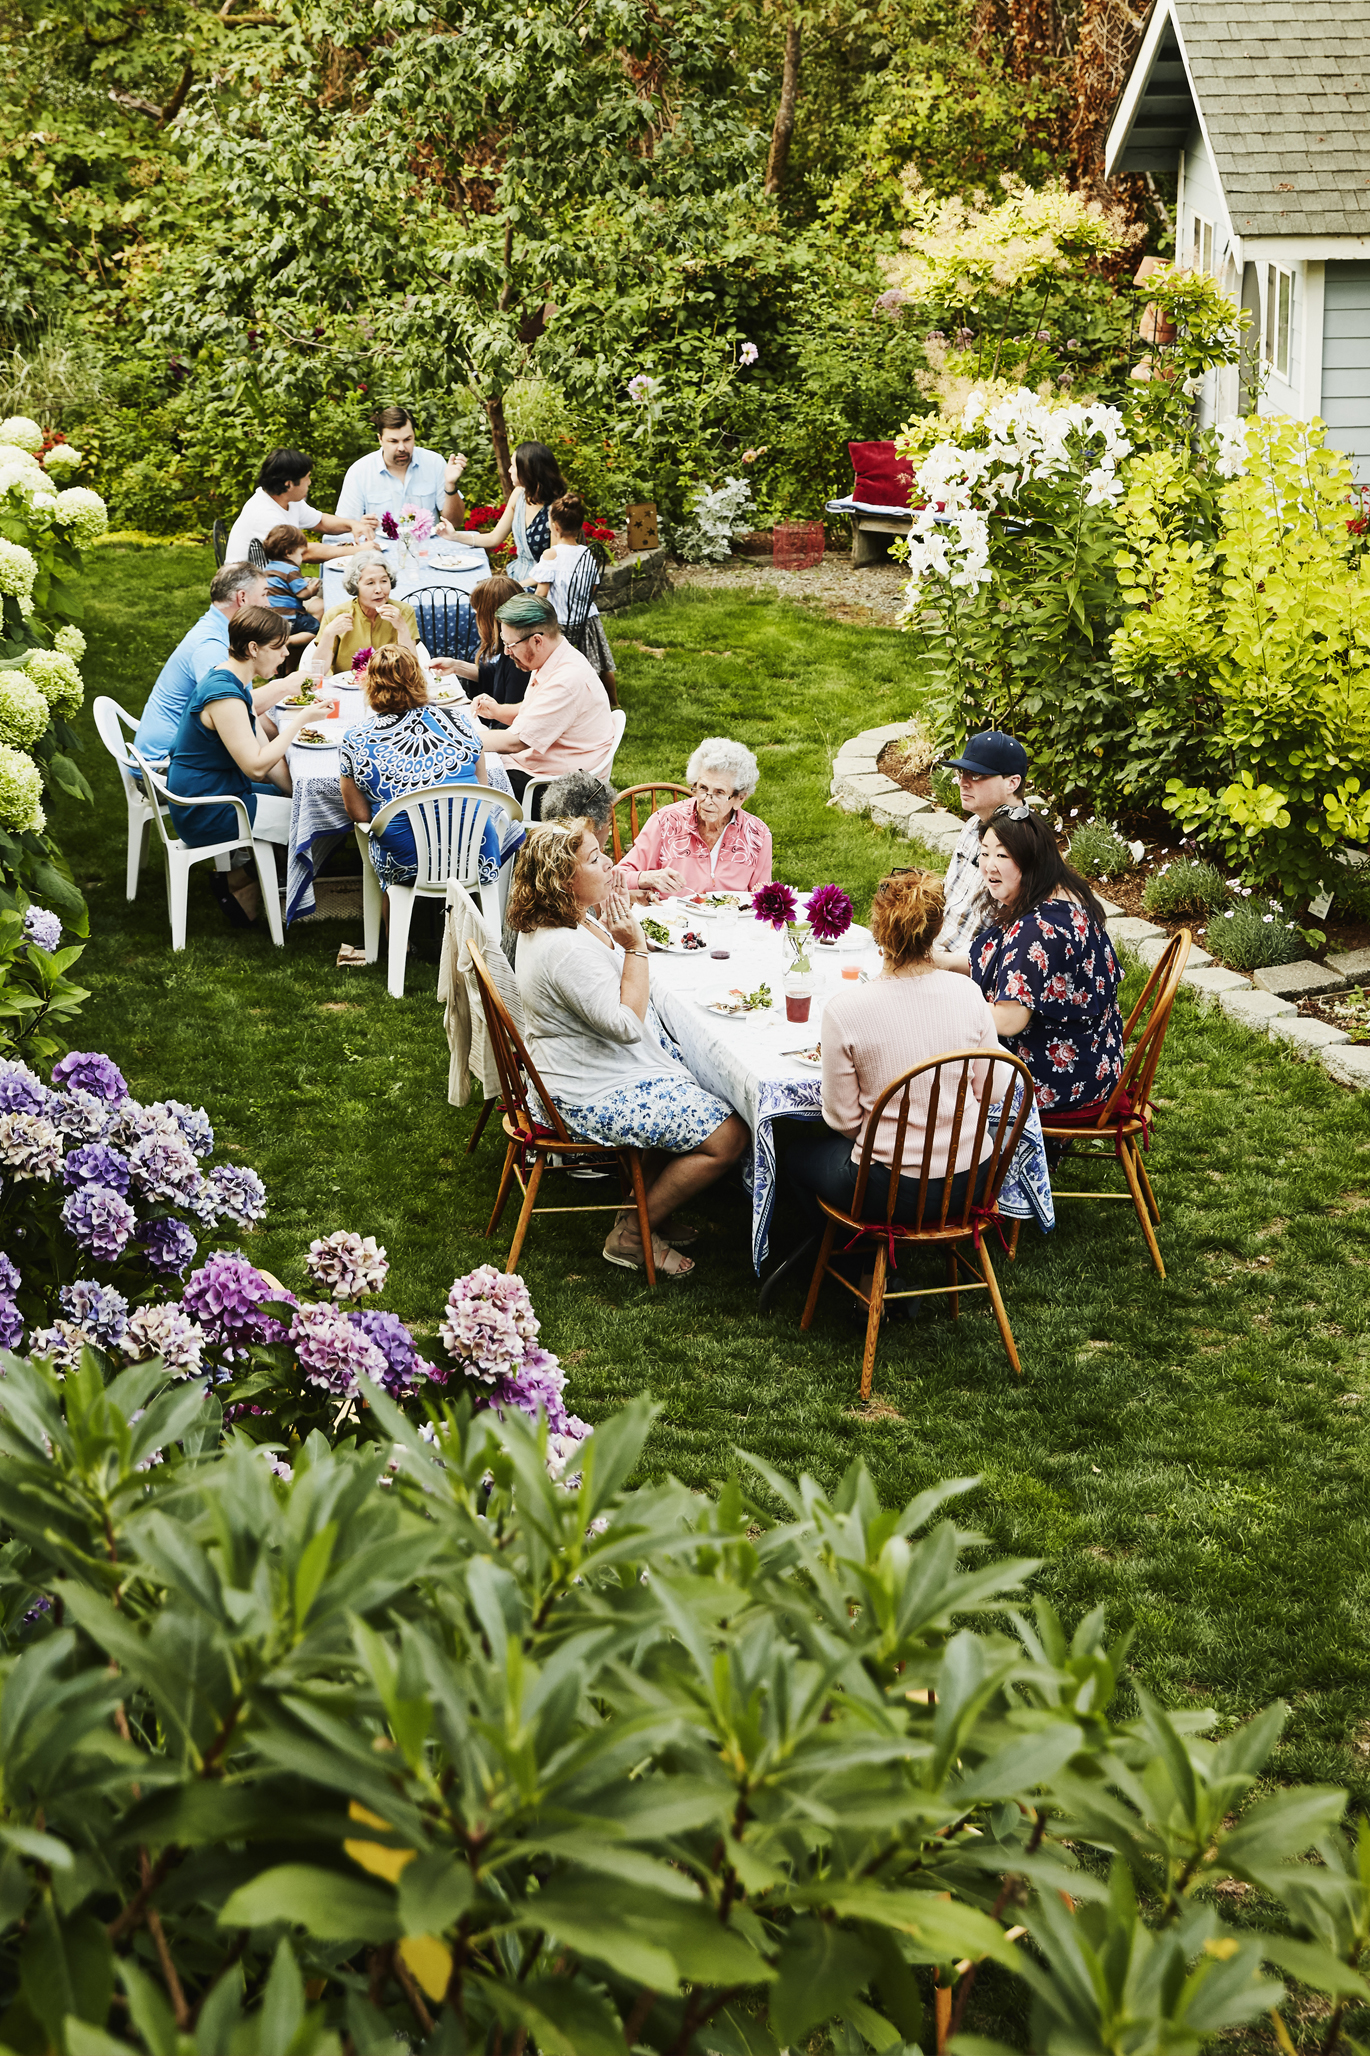 Families gathered at two tables enjoying time in backyard